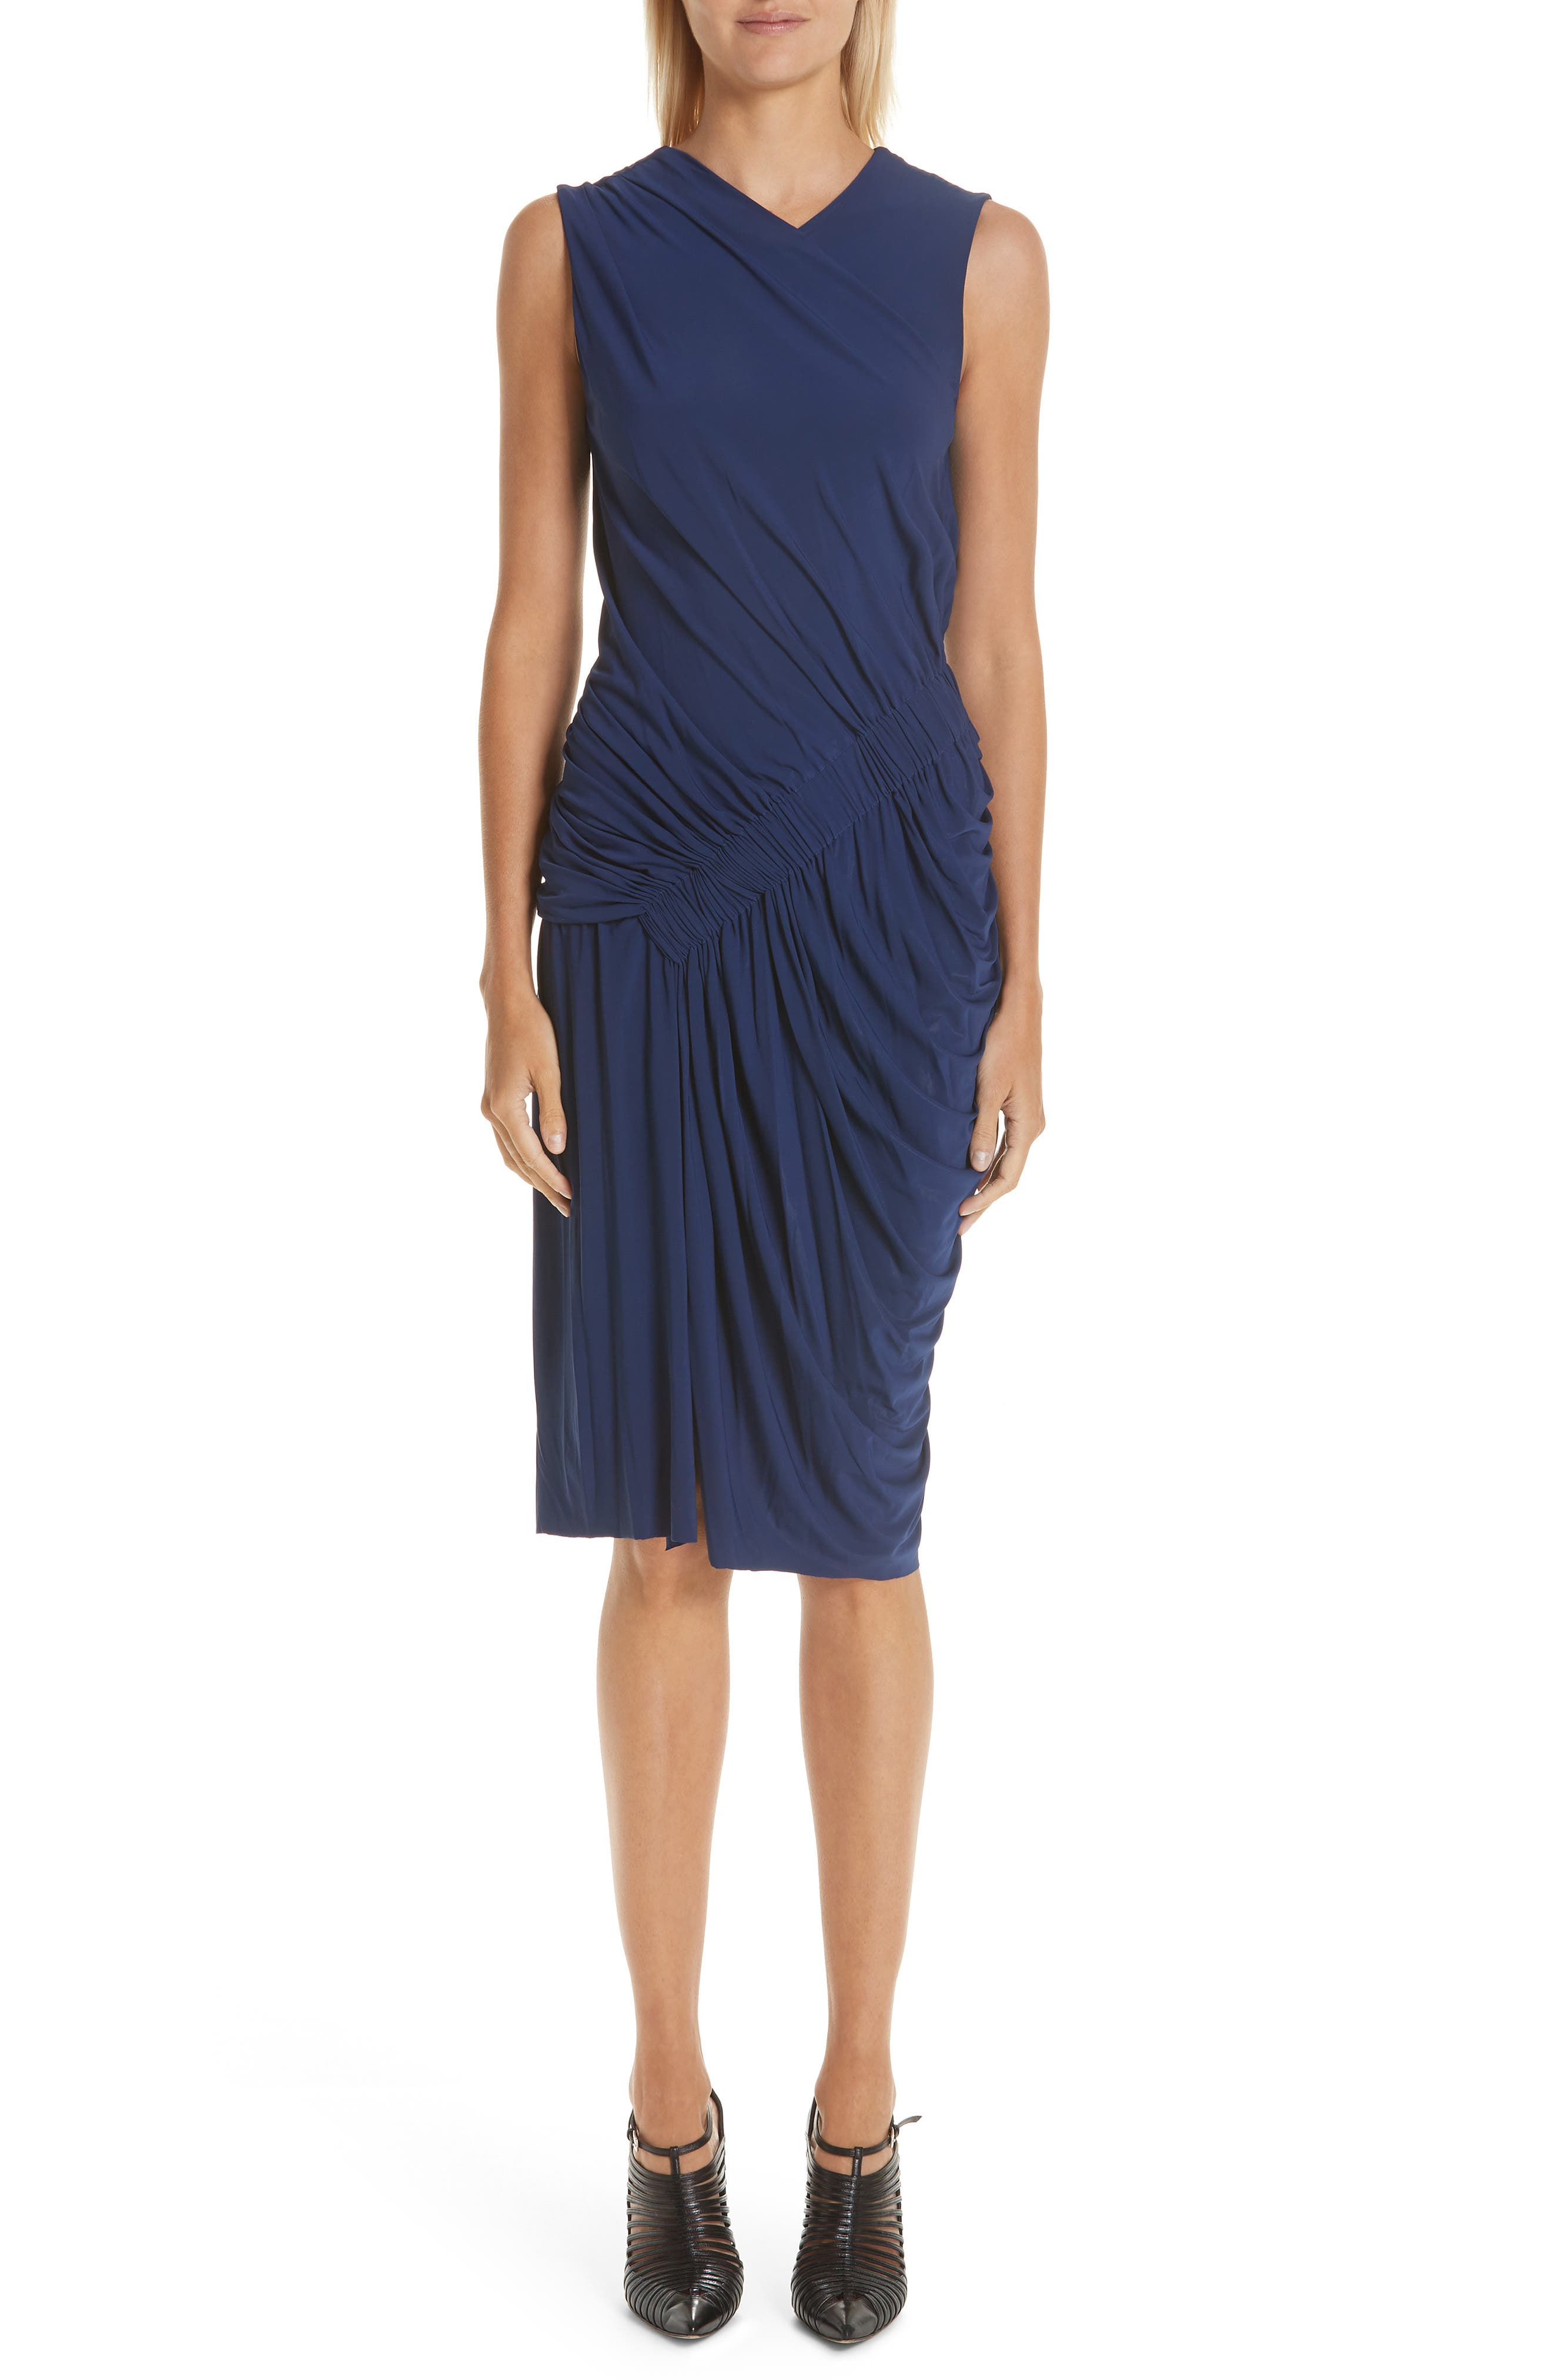 JASON WU Sleeveless Stretch-Cady Ruched Cocktail Dress in Sapphire Blue